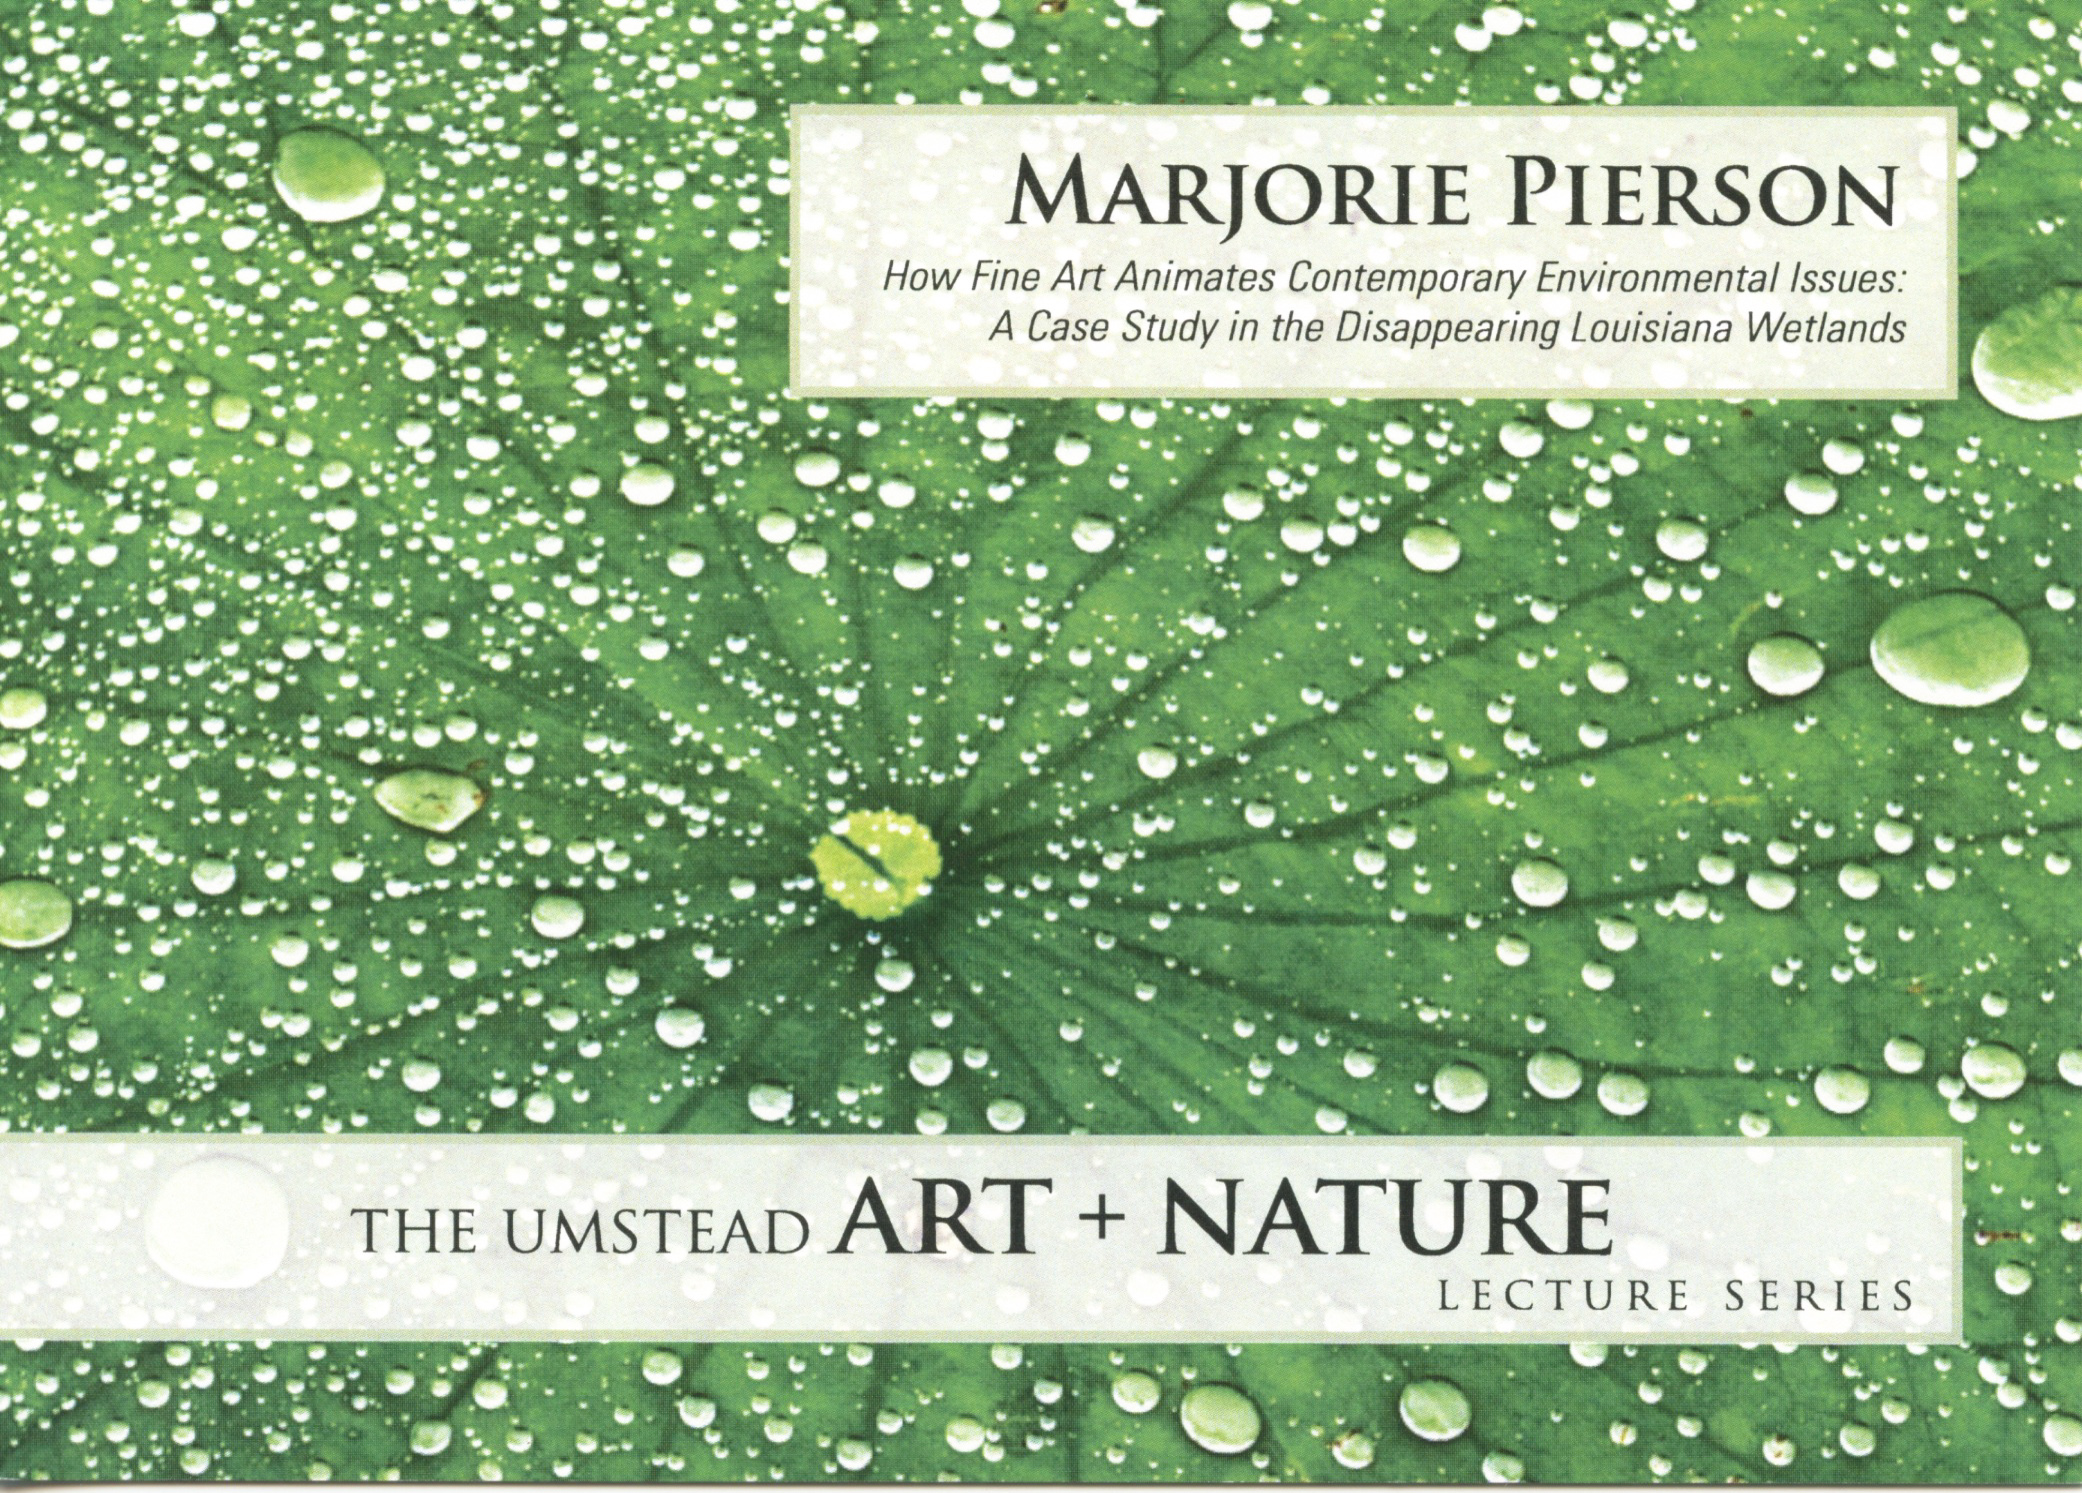 2011 Umstead Art + Nature Lecture